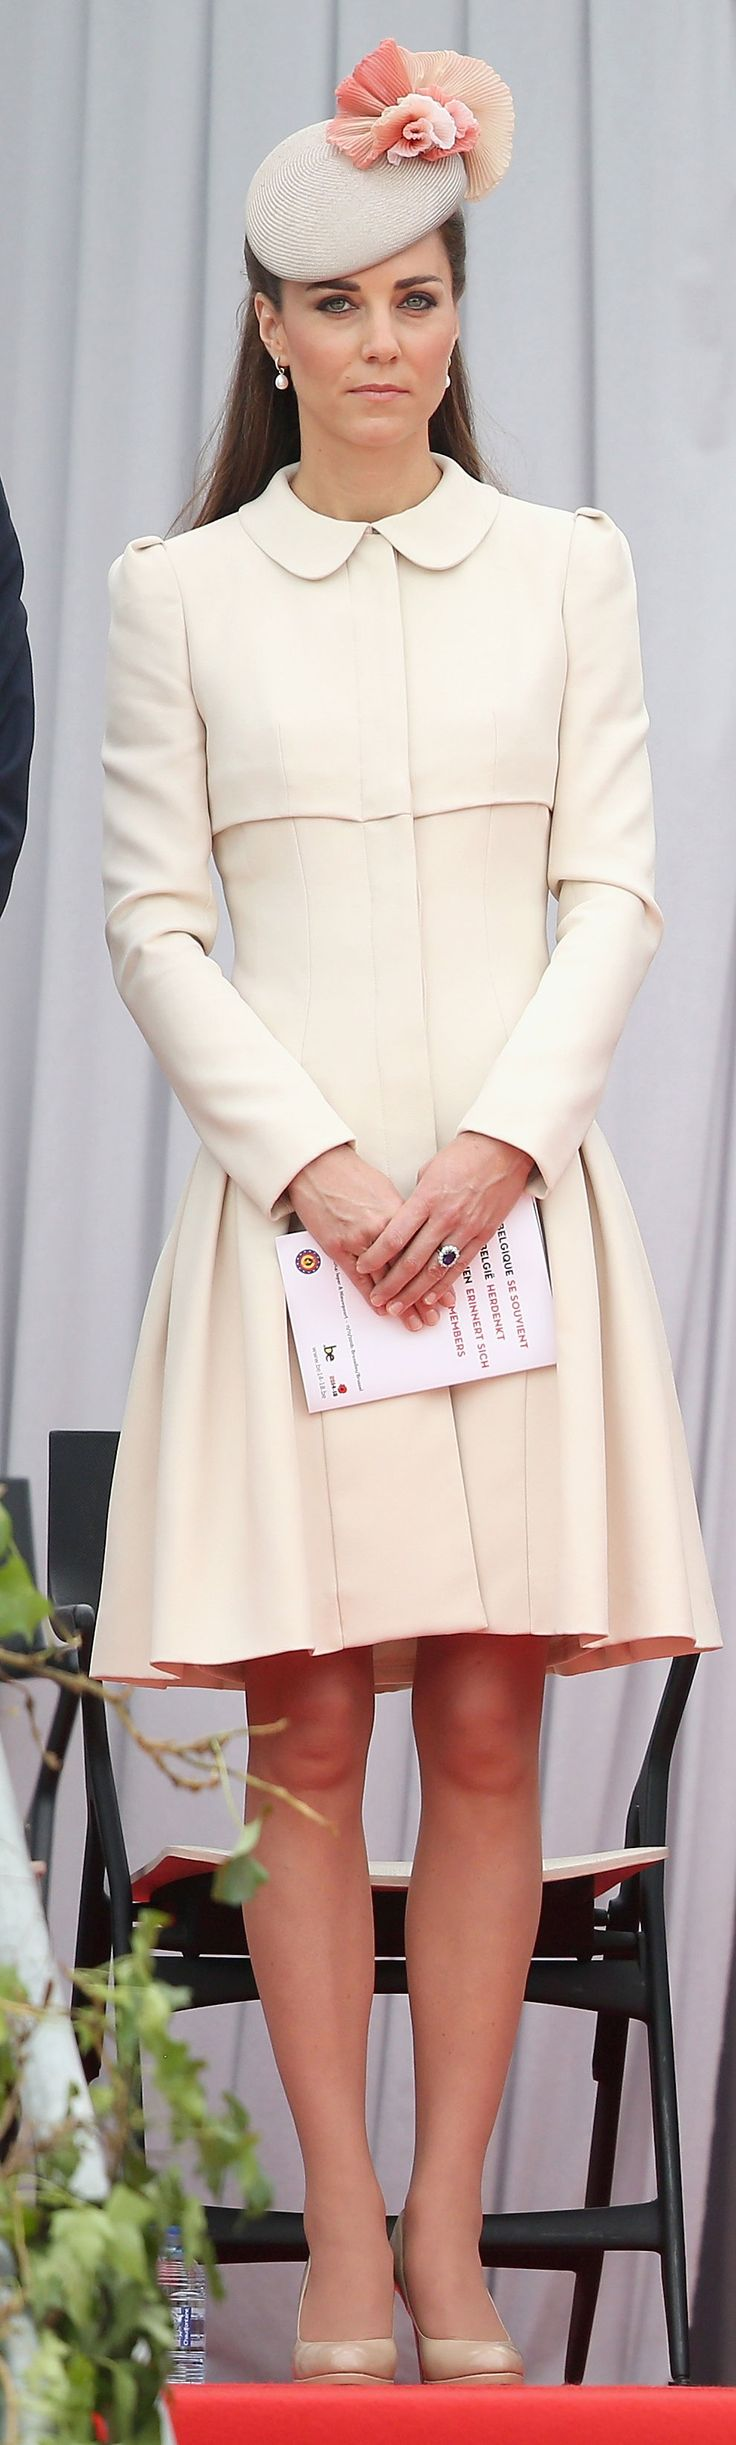 Kate Middleton in white Alexander McQueen dress: Duchess Of Cambridge, Alexander Mcqueen Dresses, Style 2014, Straws Hats, Middleton Style, Coats Dresses Kate Middleton, Kate Style, Catherine Duchess, Popsugar Fashion